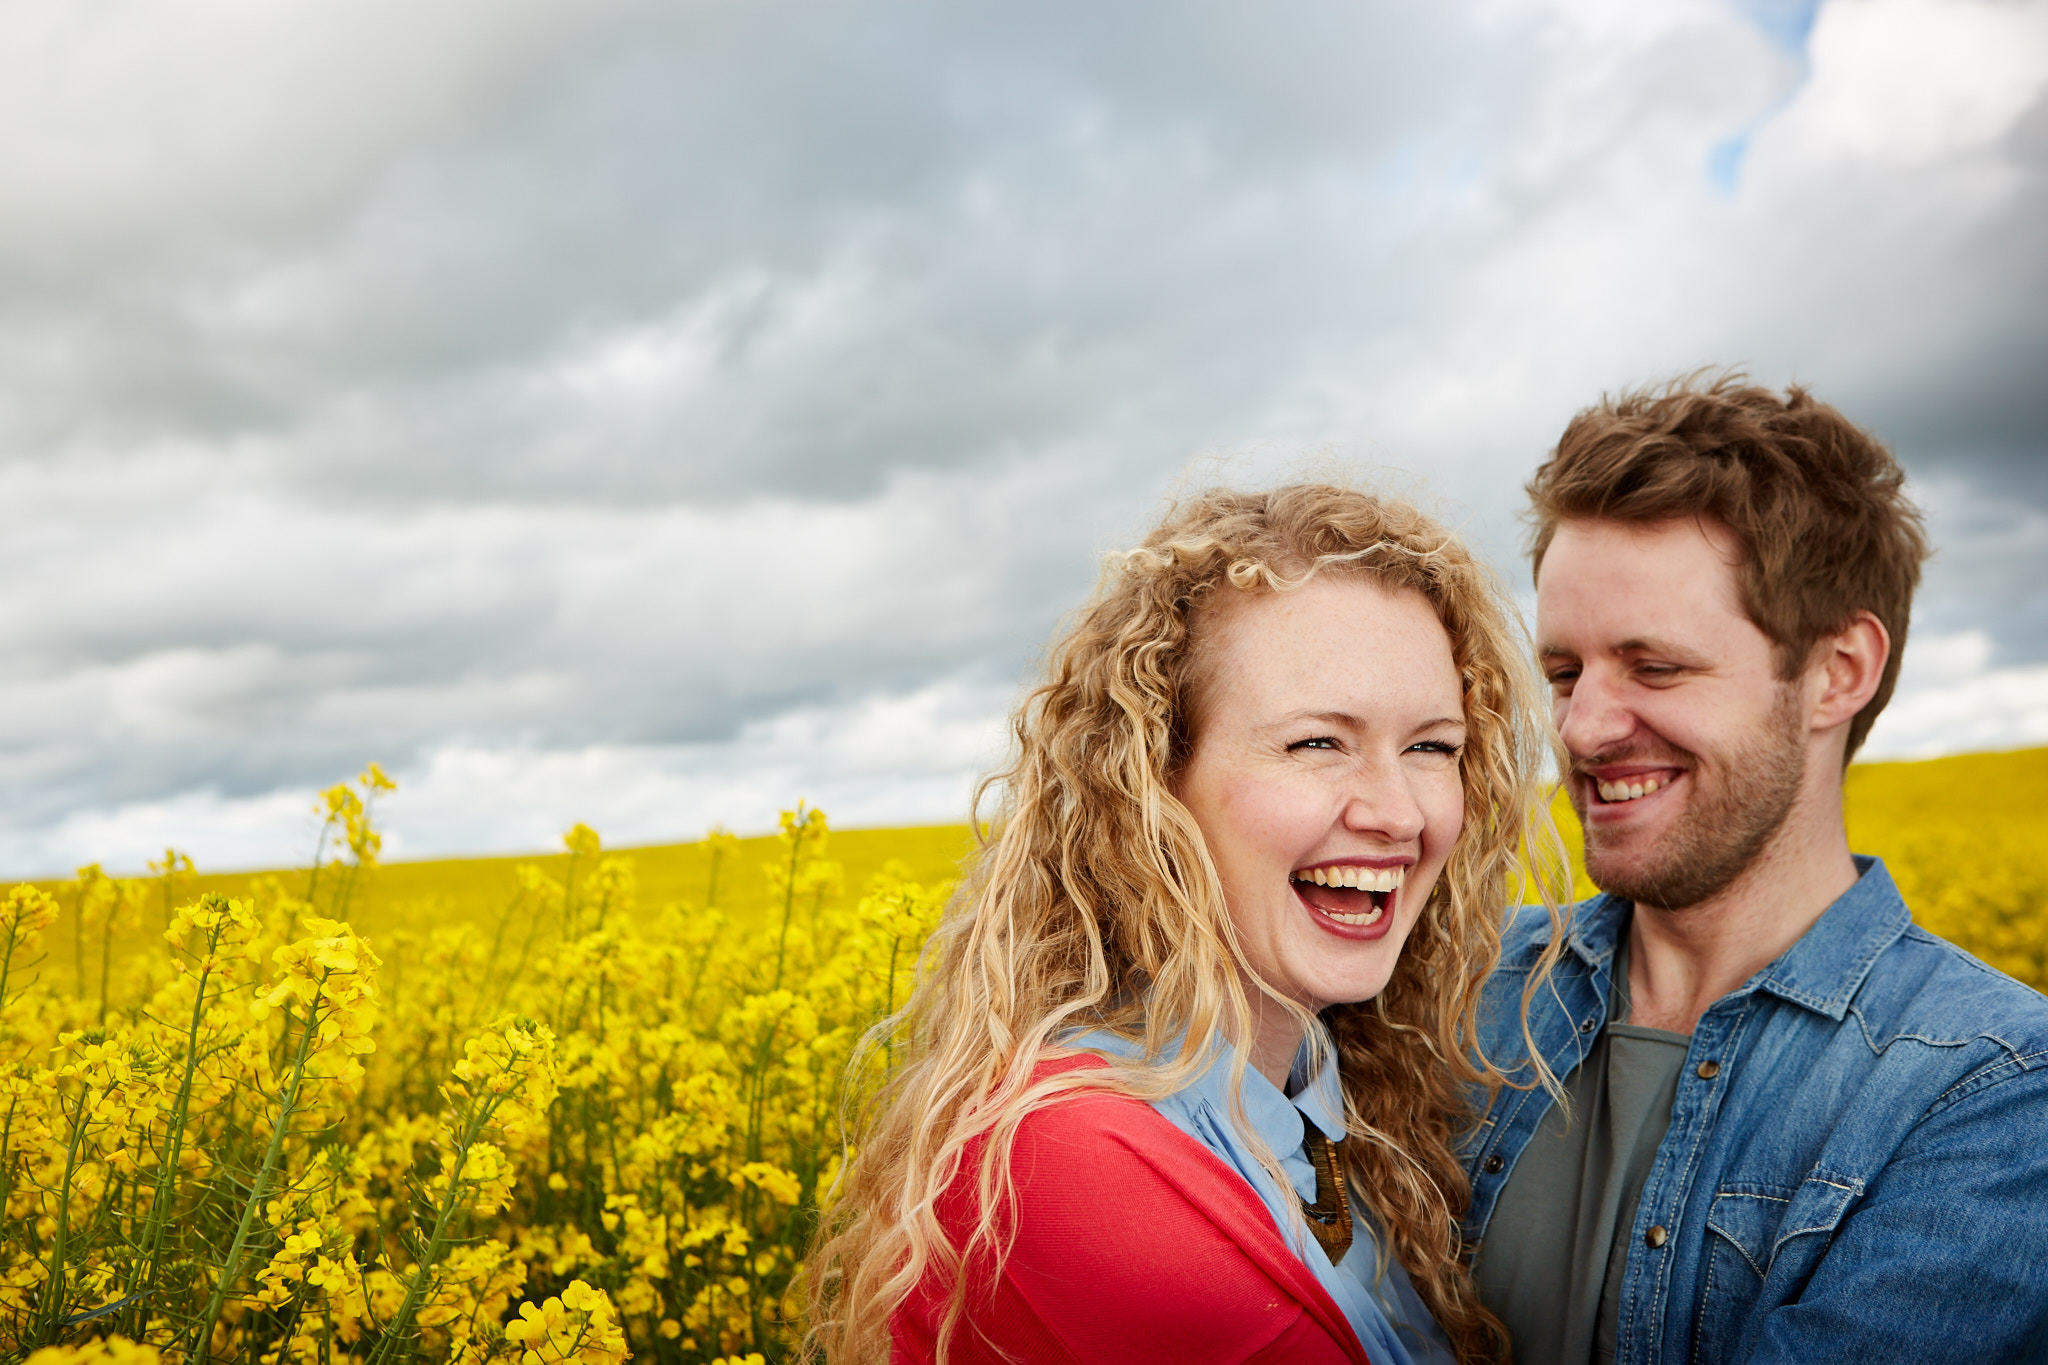 In this shoot the blue of the dress is complimented by the denim shirt. The couple felt comfortable, allowing moments like this to be captured naturally.